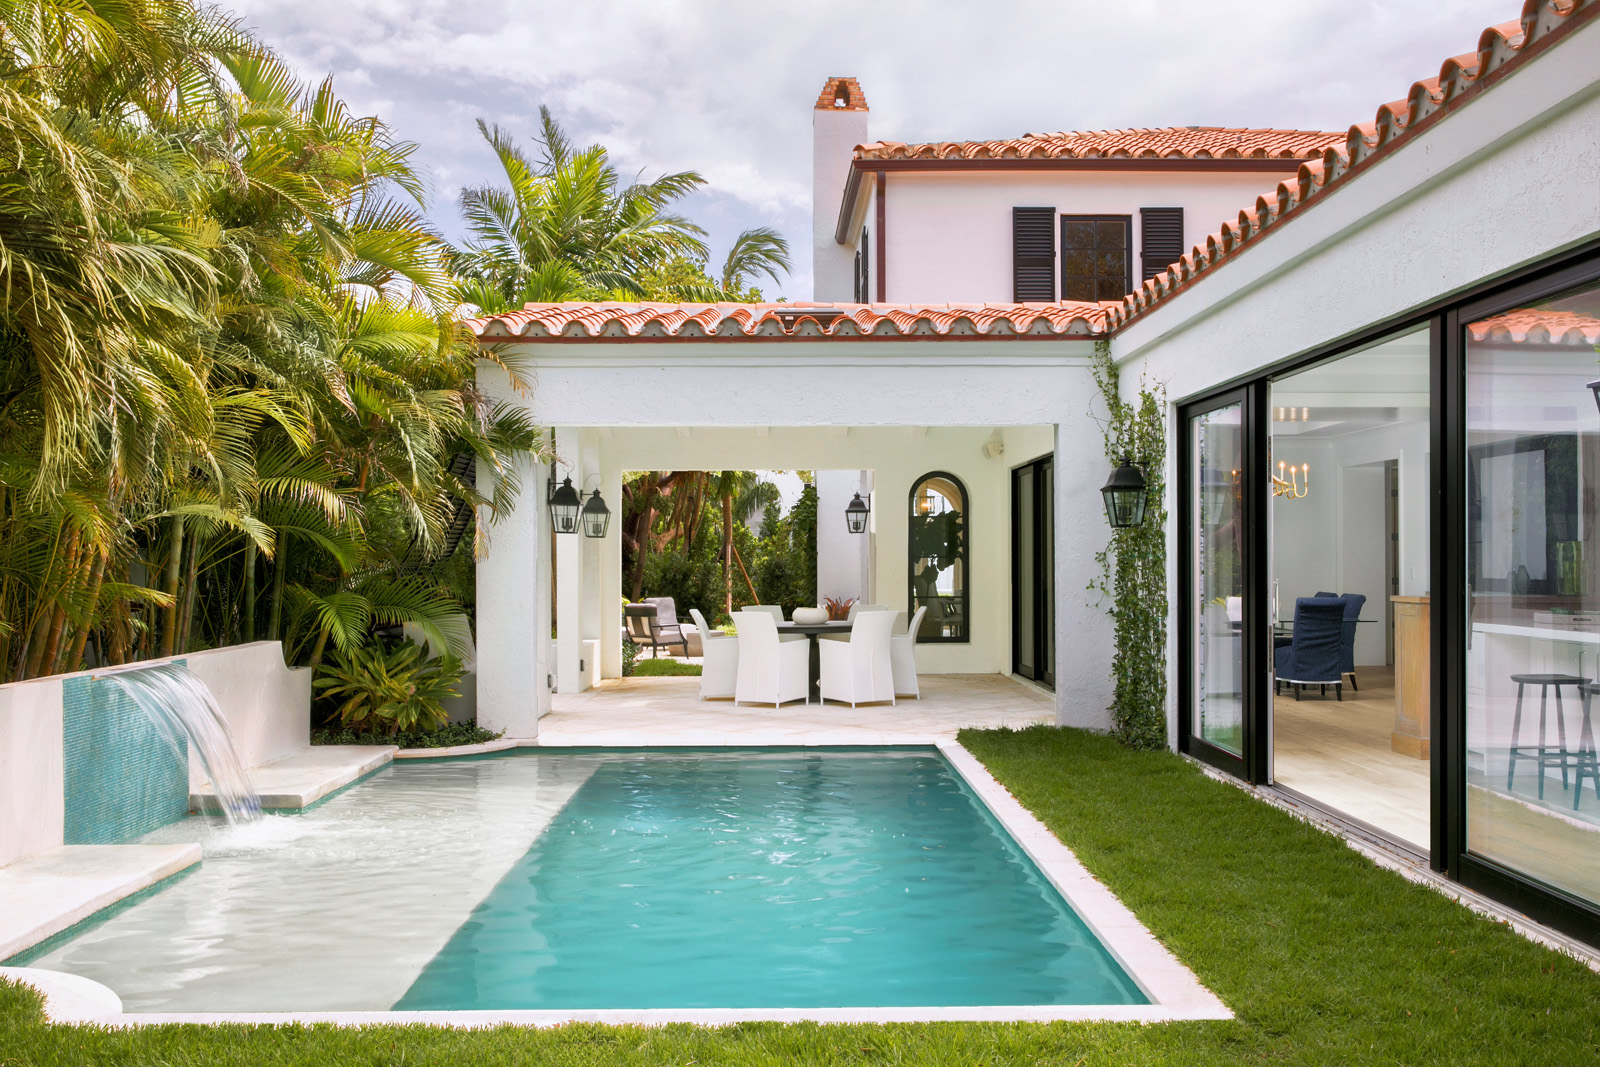 Montreal designer produces beautiful Mediterranean-style home in Palm Beach